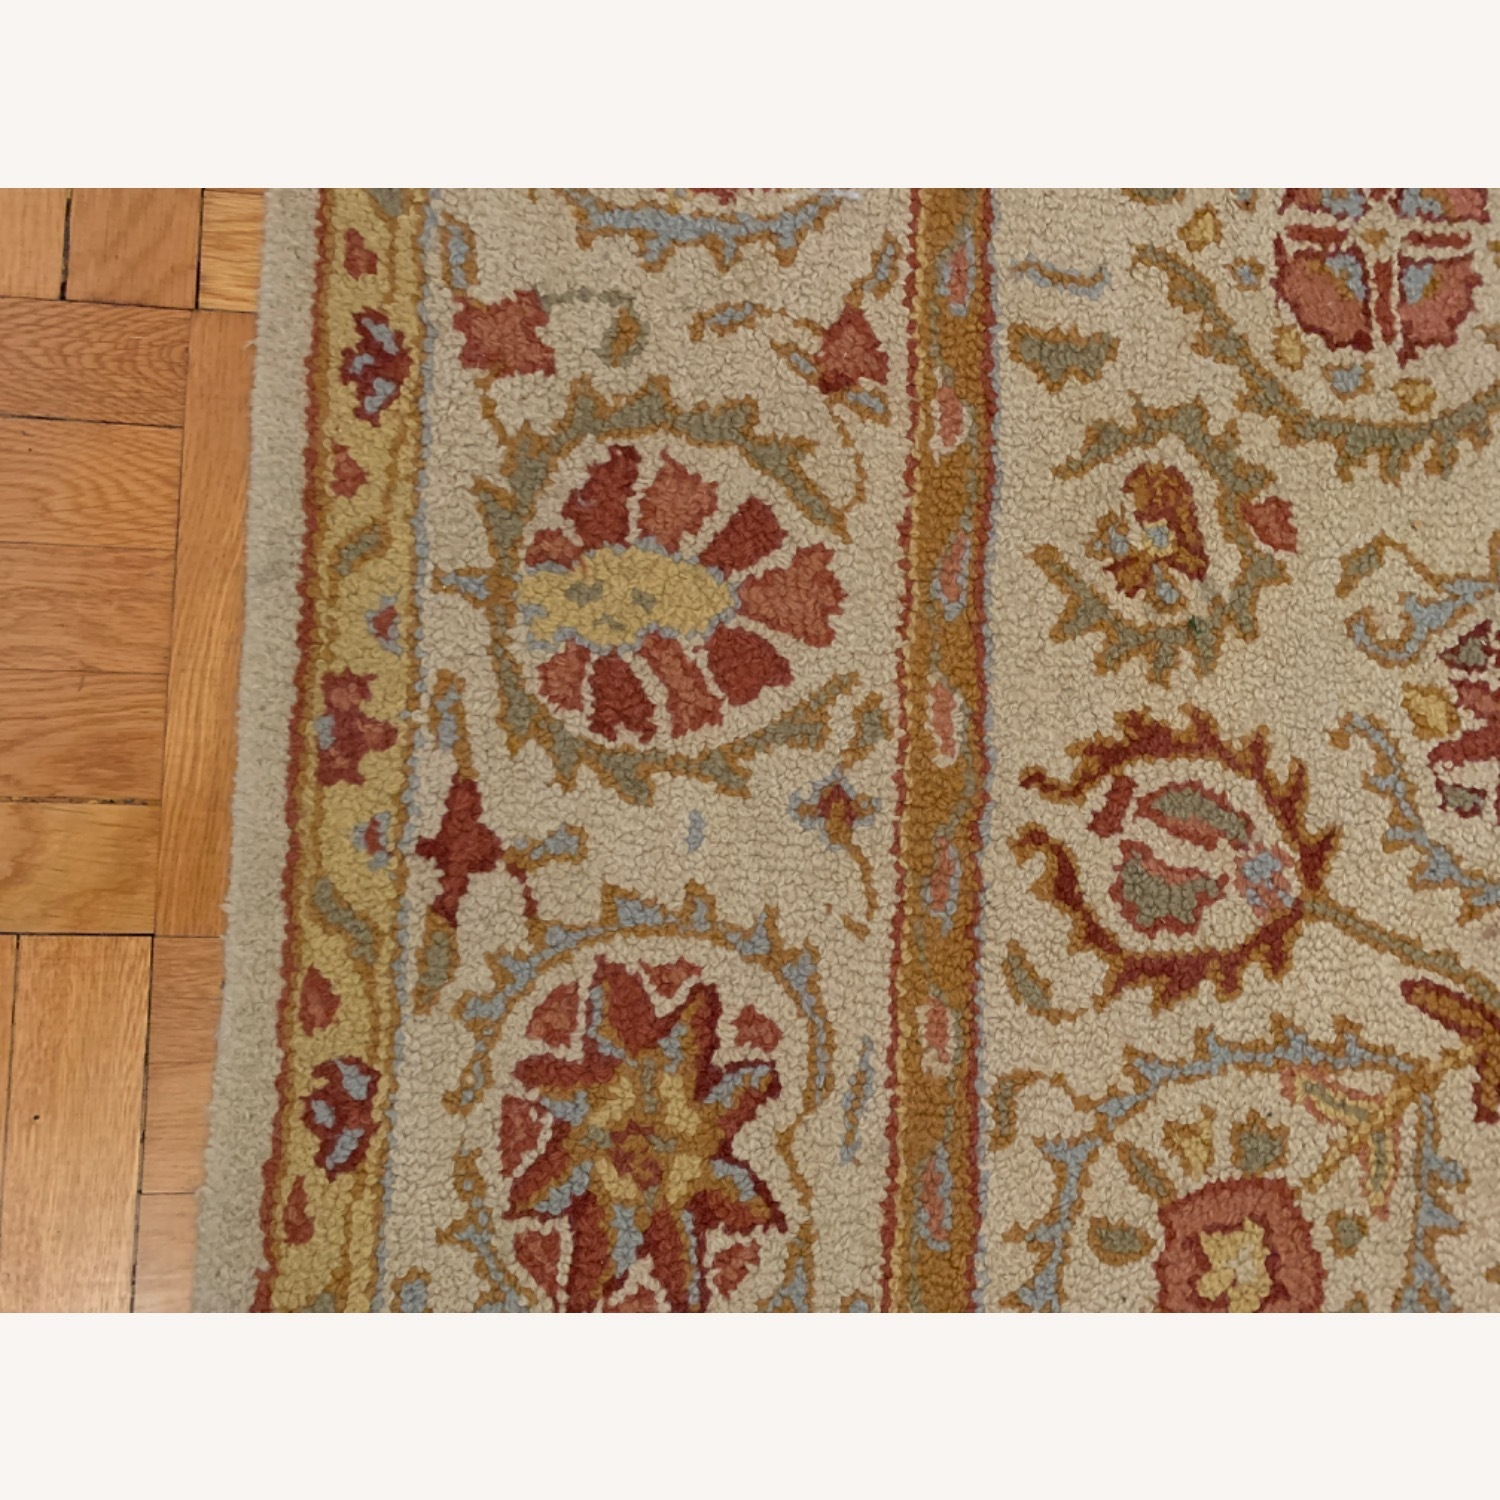 Pottery Barn Wool Rug - image-3